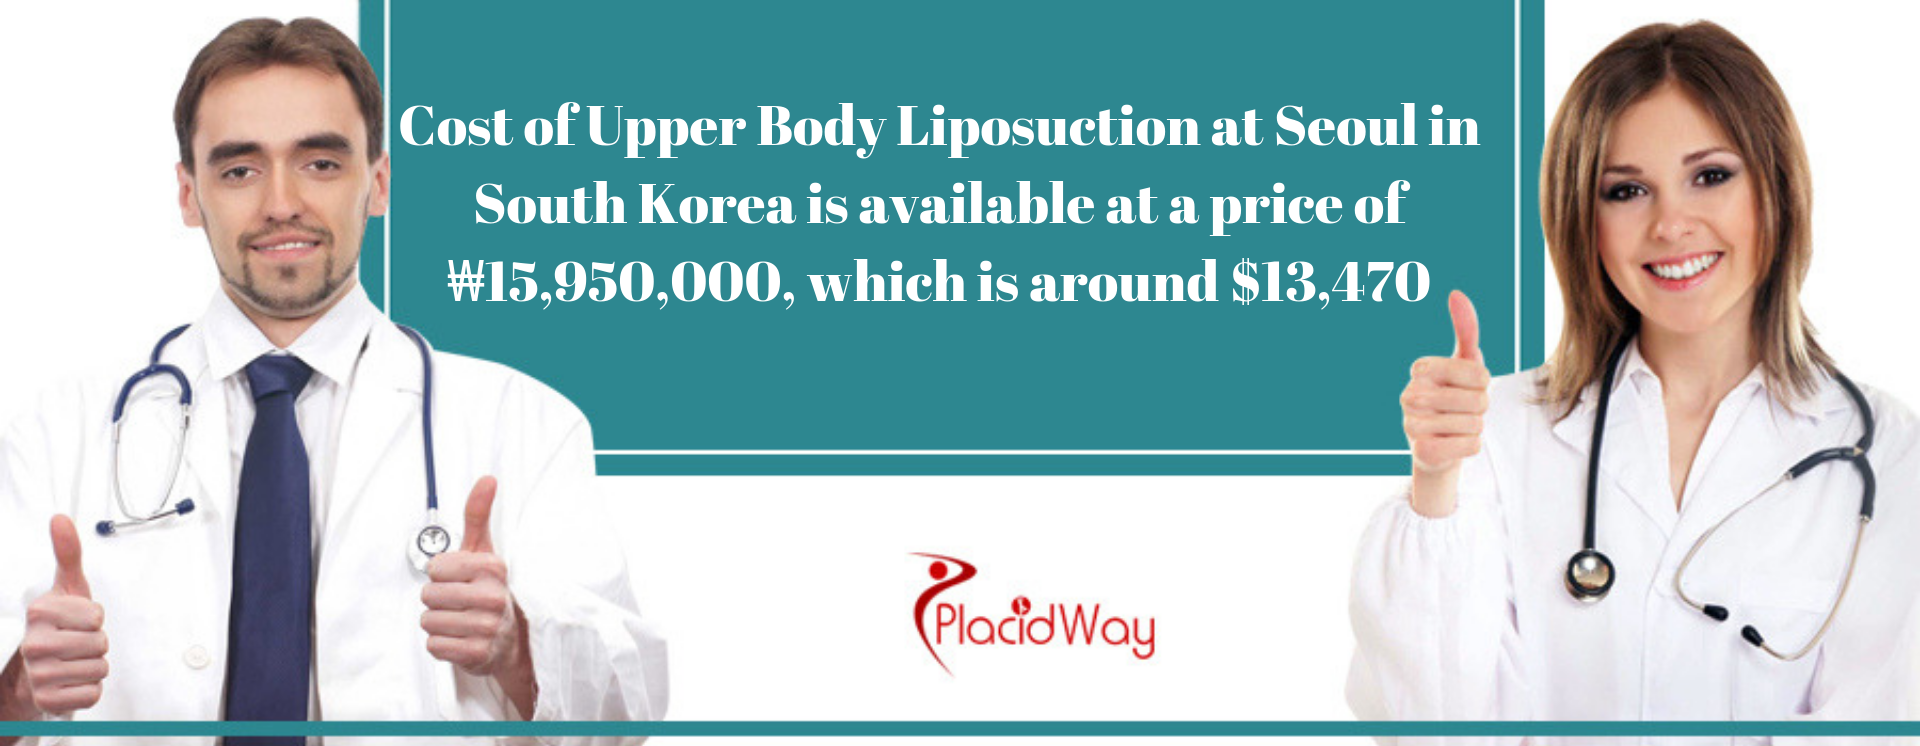 Cost of Upper Body Liposuction at Seoul in South Korea is available at a price of ₩15,950,000, which is around $13,470